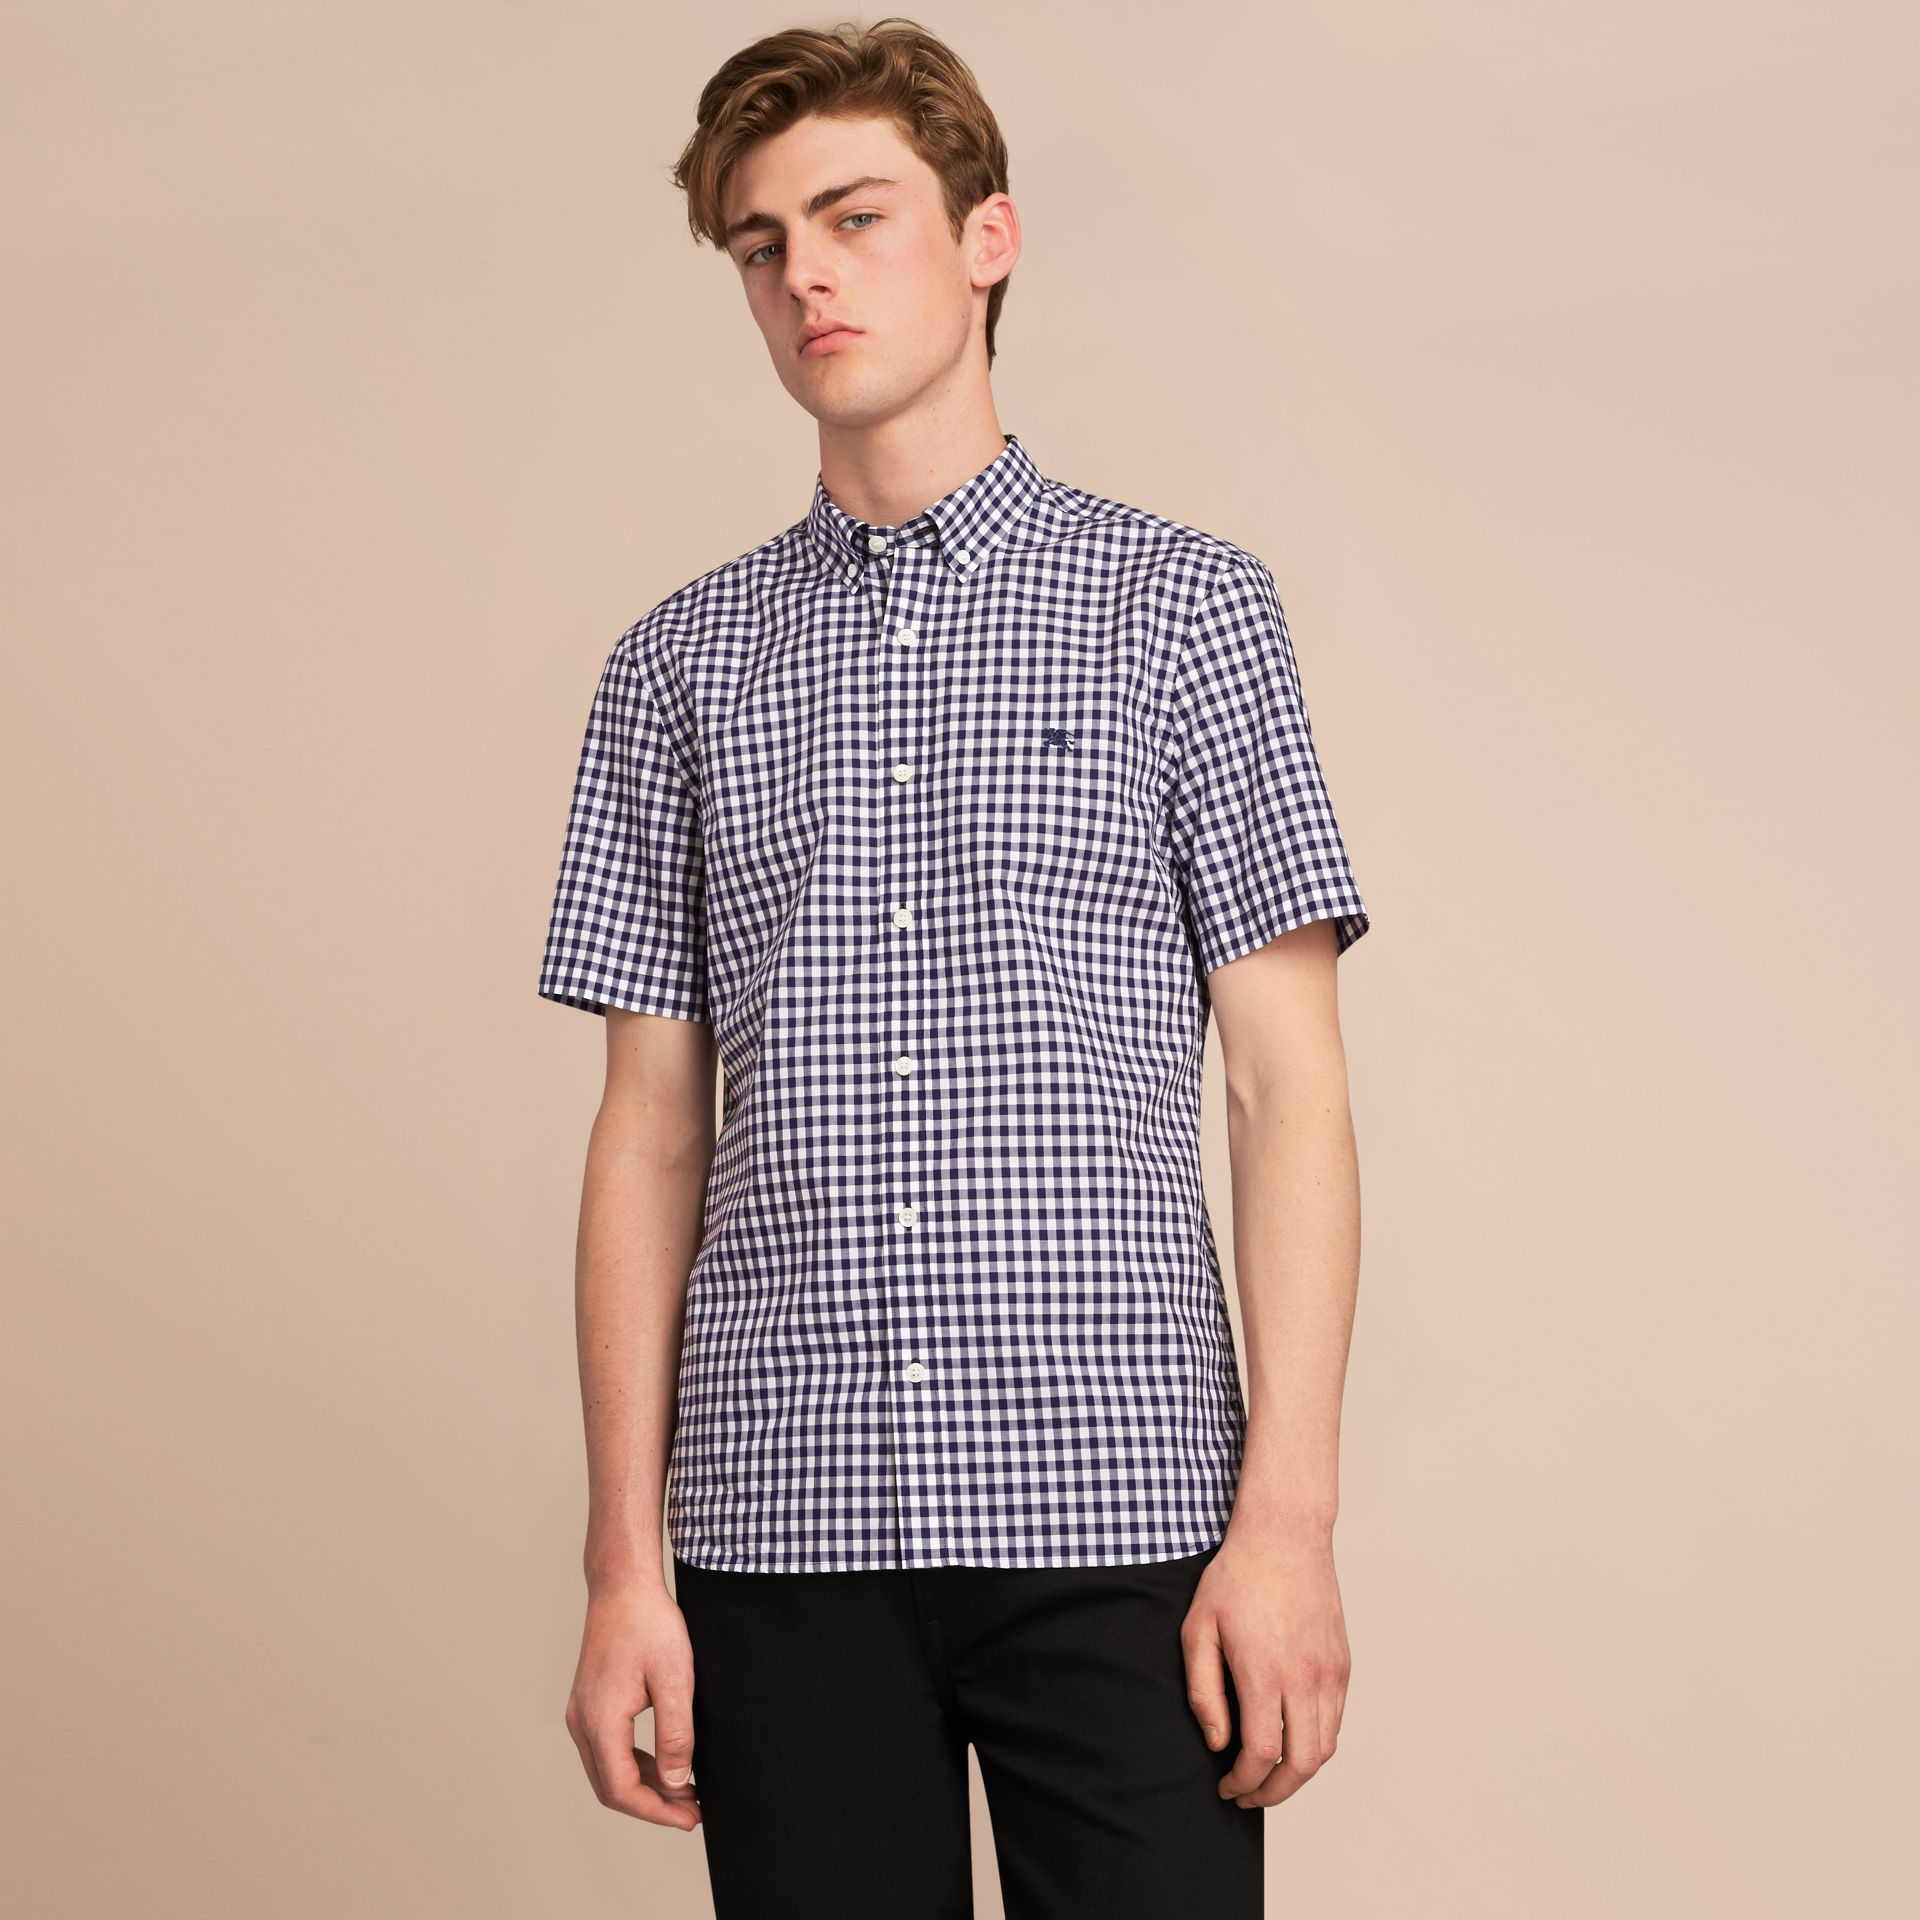 Short-sleeve Button-down Collar Cotton Gingham Shirt in Navy - Men | Burberry - gallery image 6